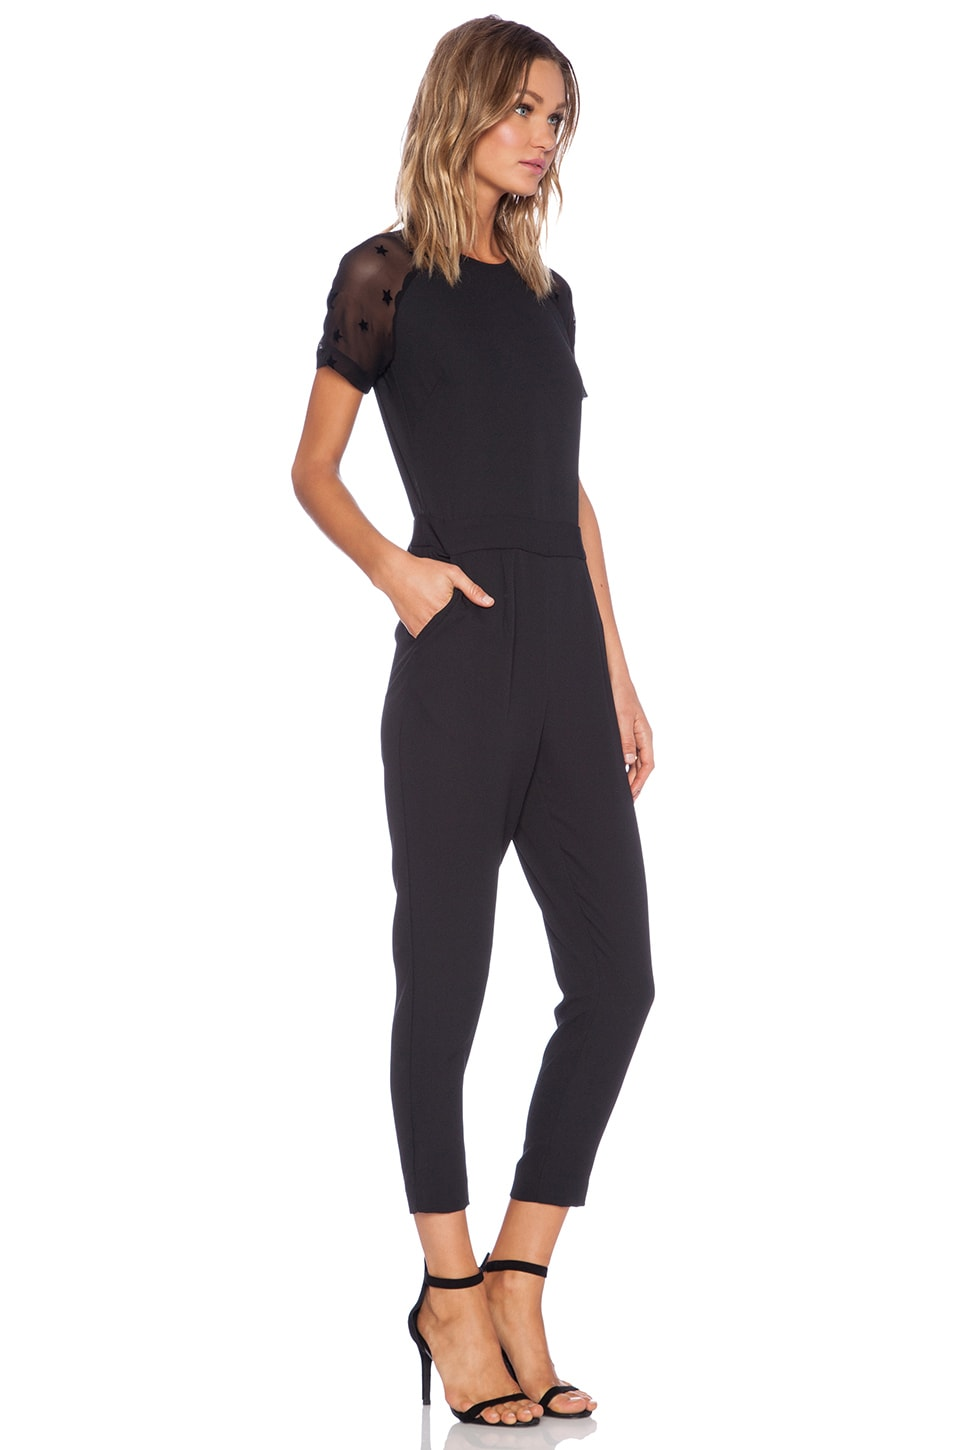 Get free shipping on Black Halo Spencer Short-Sleeve Jumpsuit w/ Slit at Neiman Marcus. Shop the latest luxury fashions from top designers.